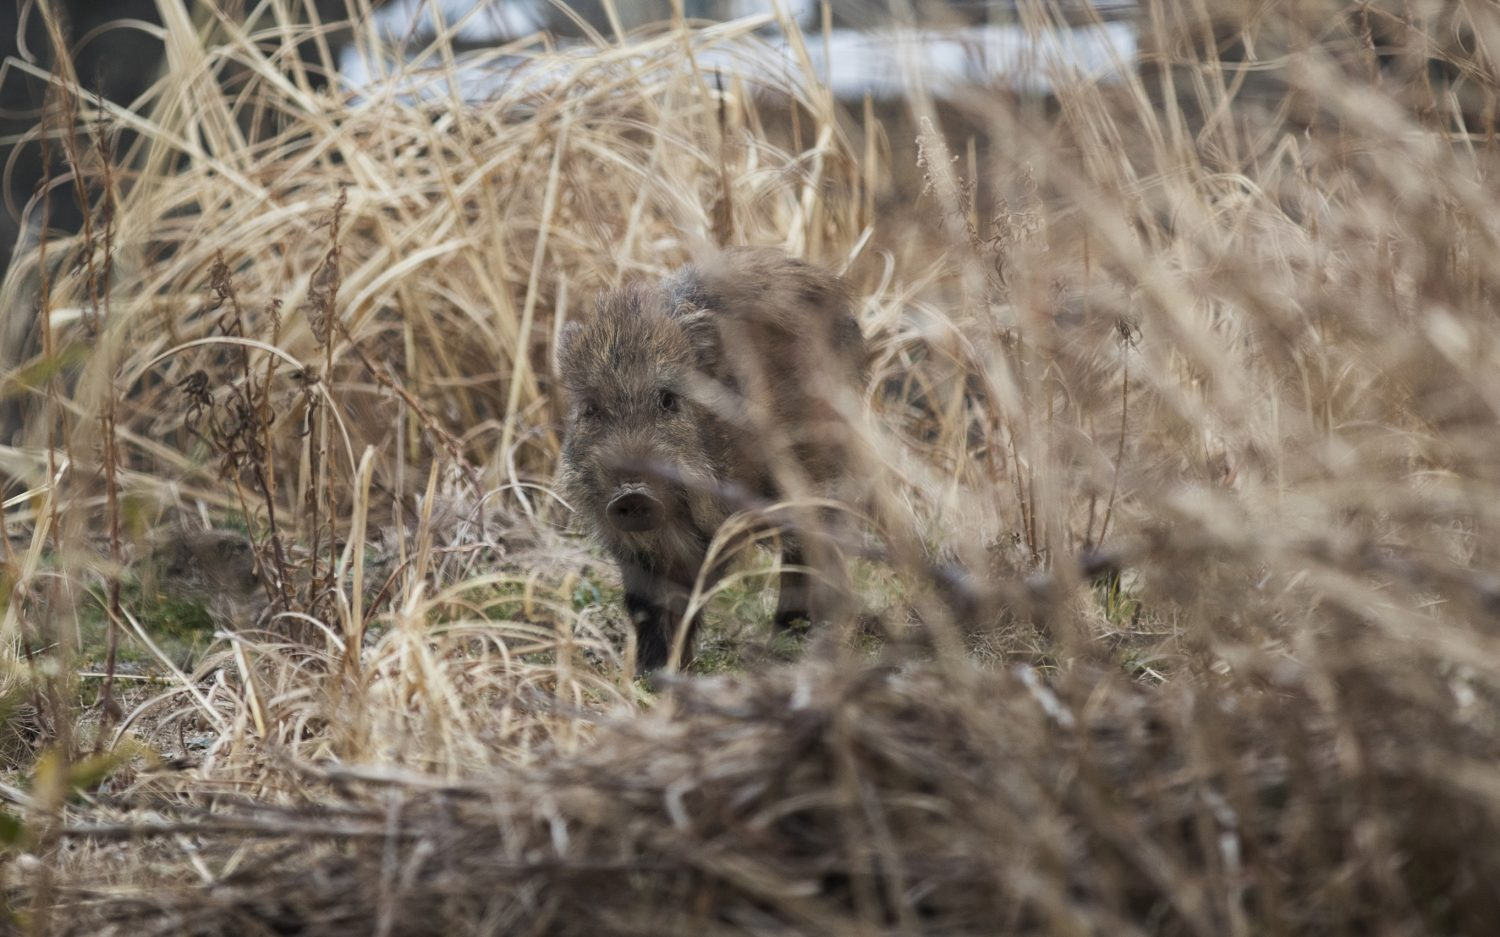 Japanese pigs live on after nuclear disaster